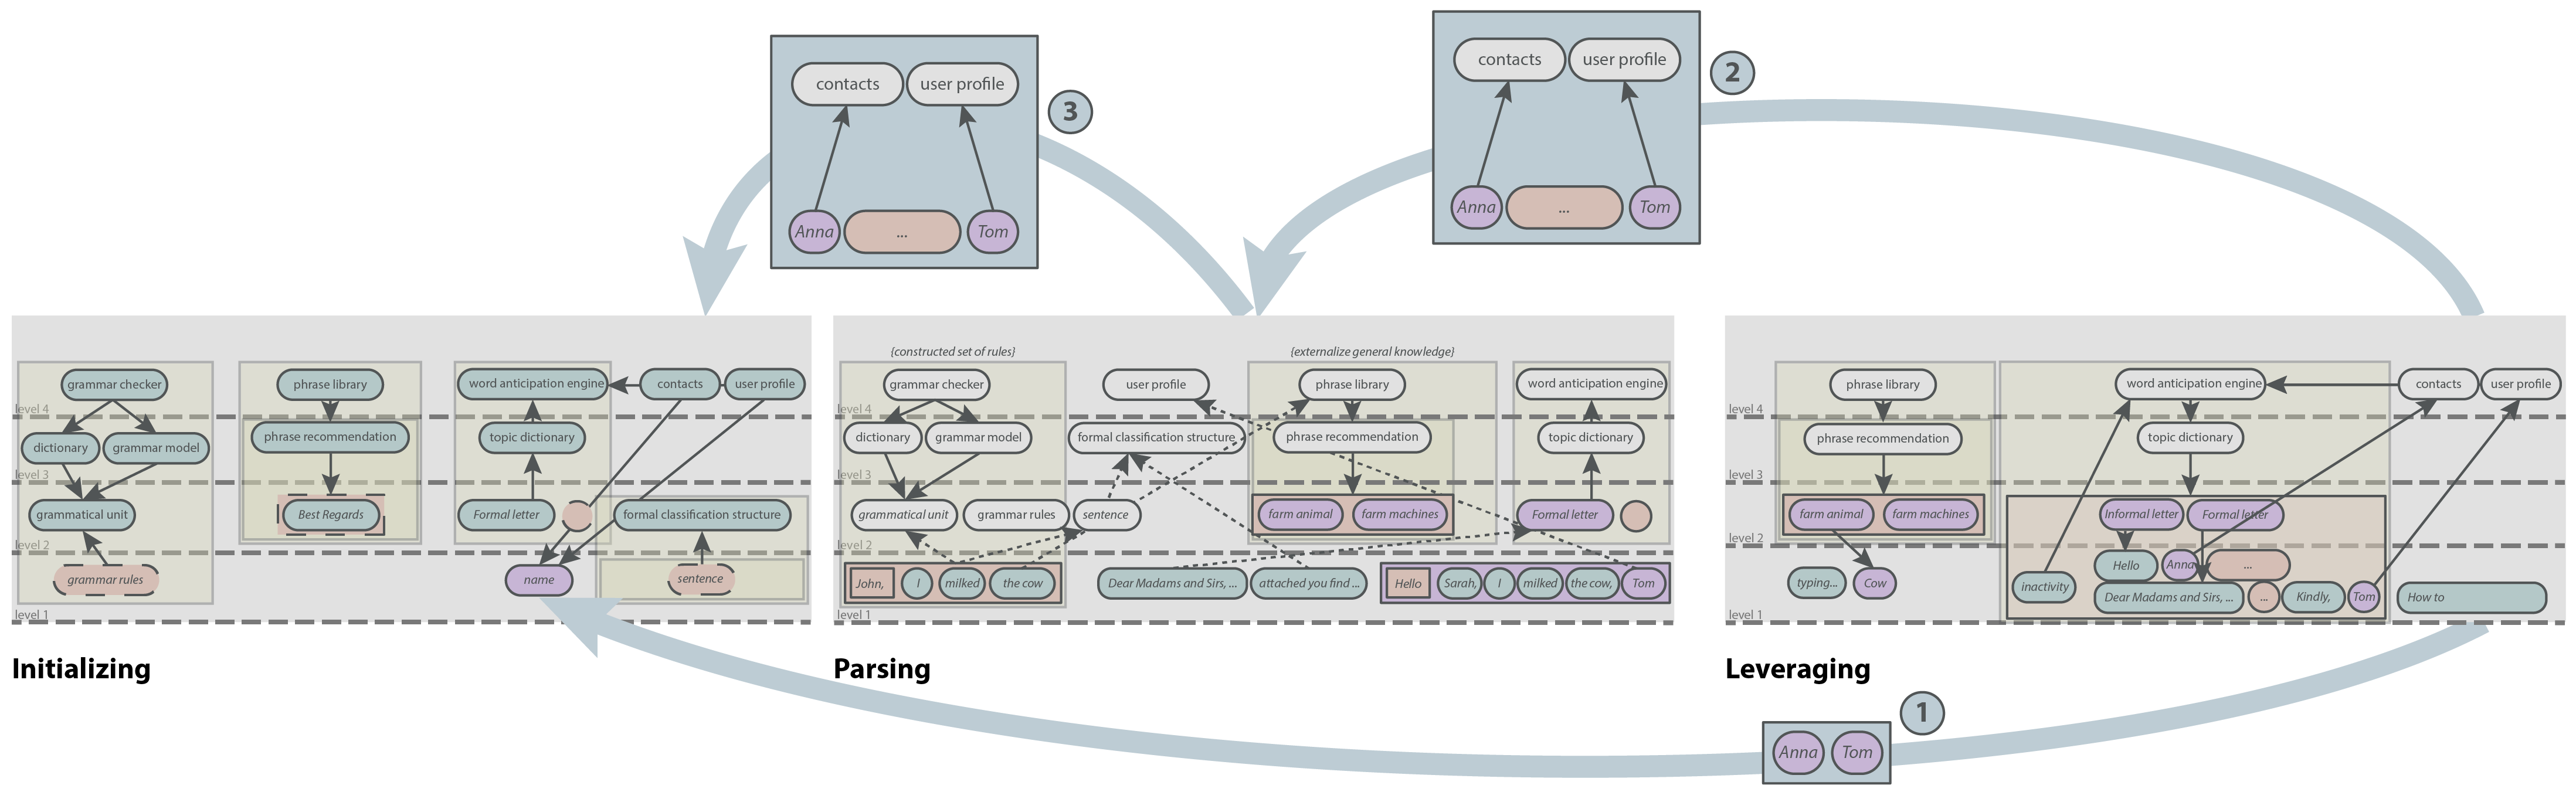 Iterative refinement of the provenance task abstraction framework.